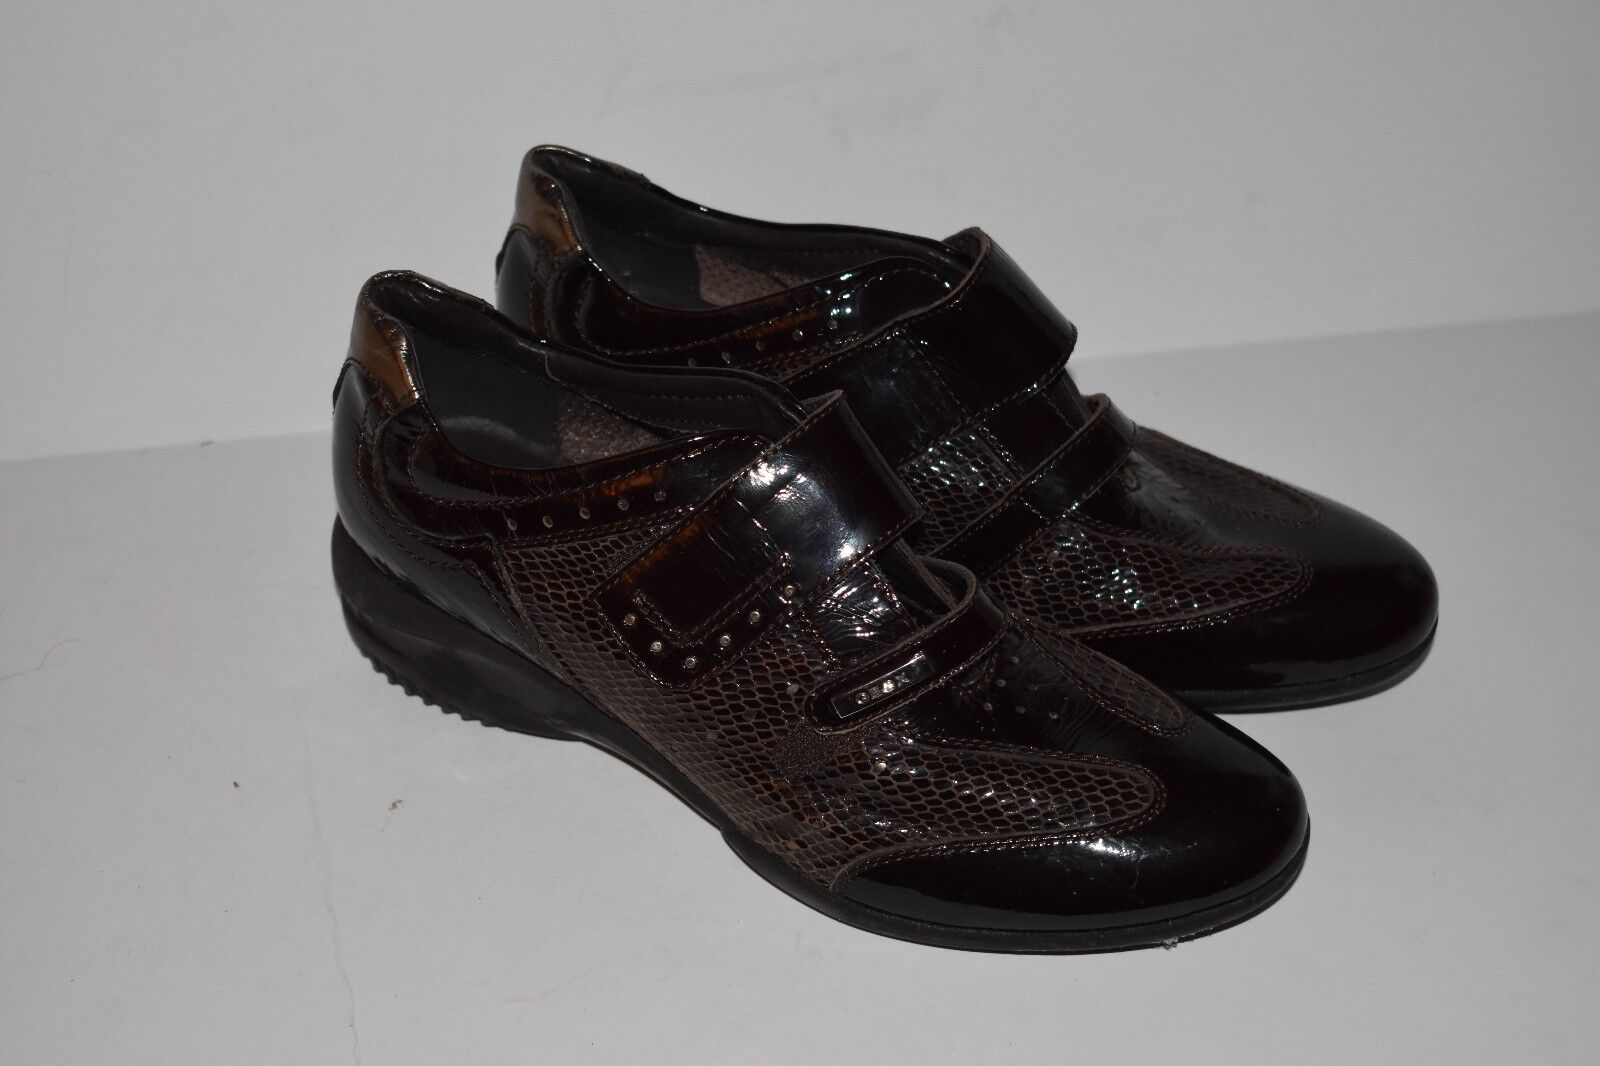 GEOX Respira Patent Leather Wedge Loafers Sneakers Size 40 Velcro